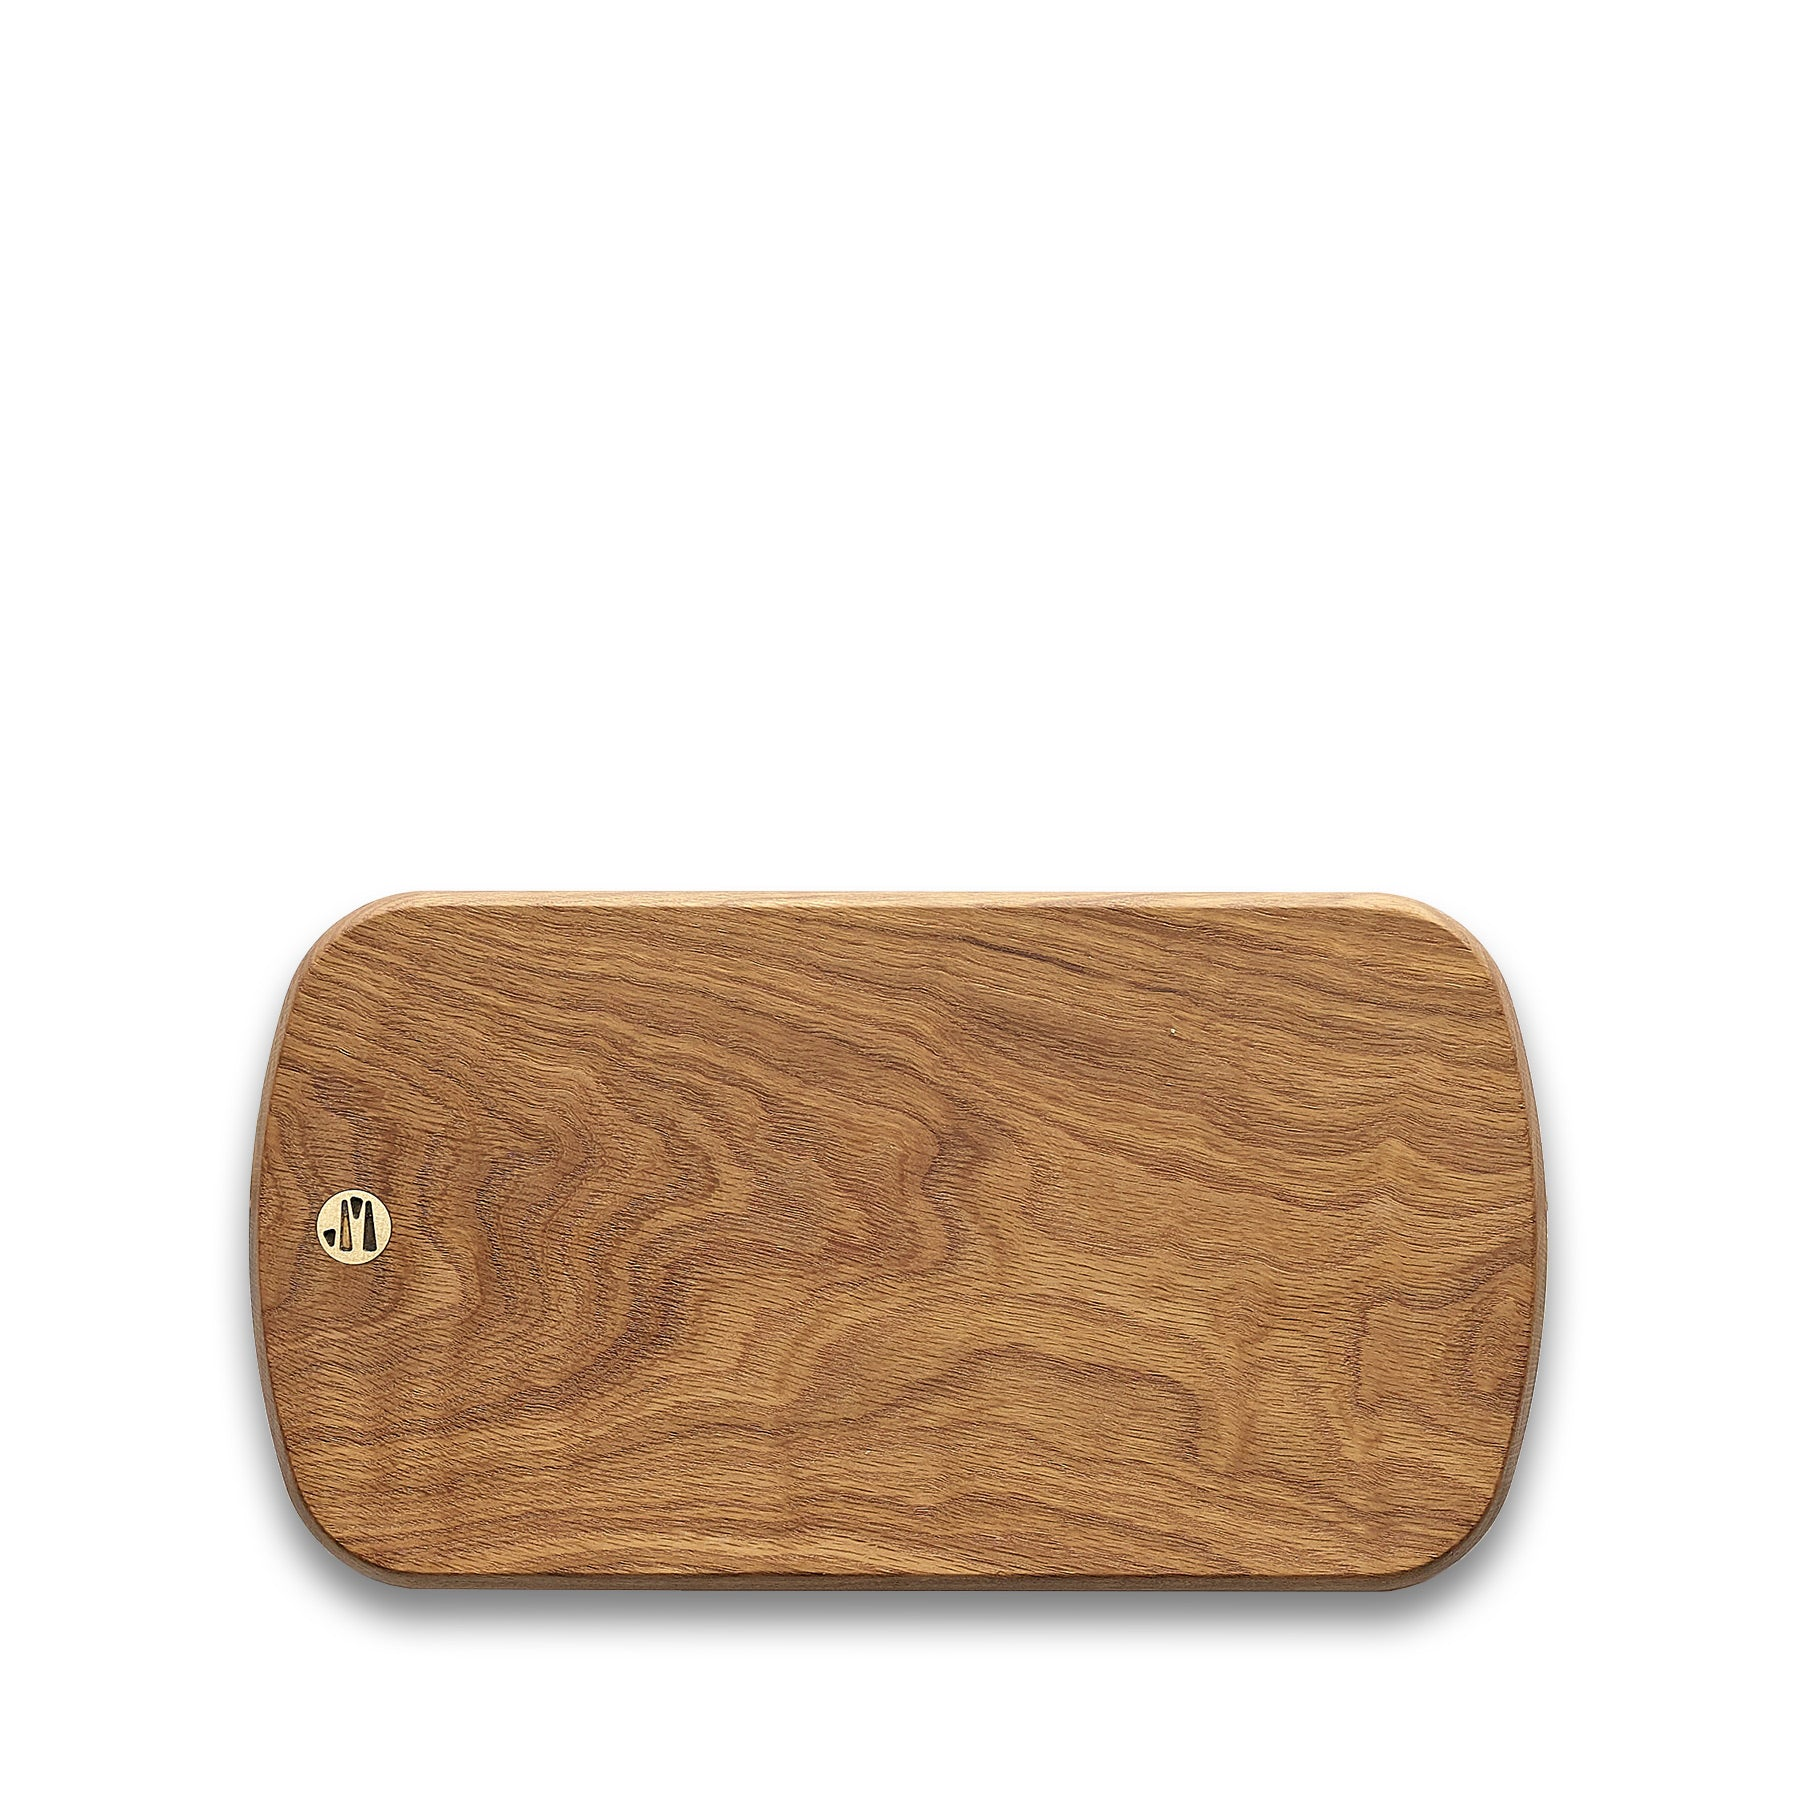 Small Rectangular White Oak Cutting Board Zoom Image 1